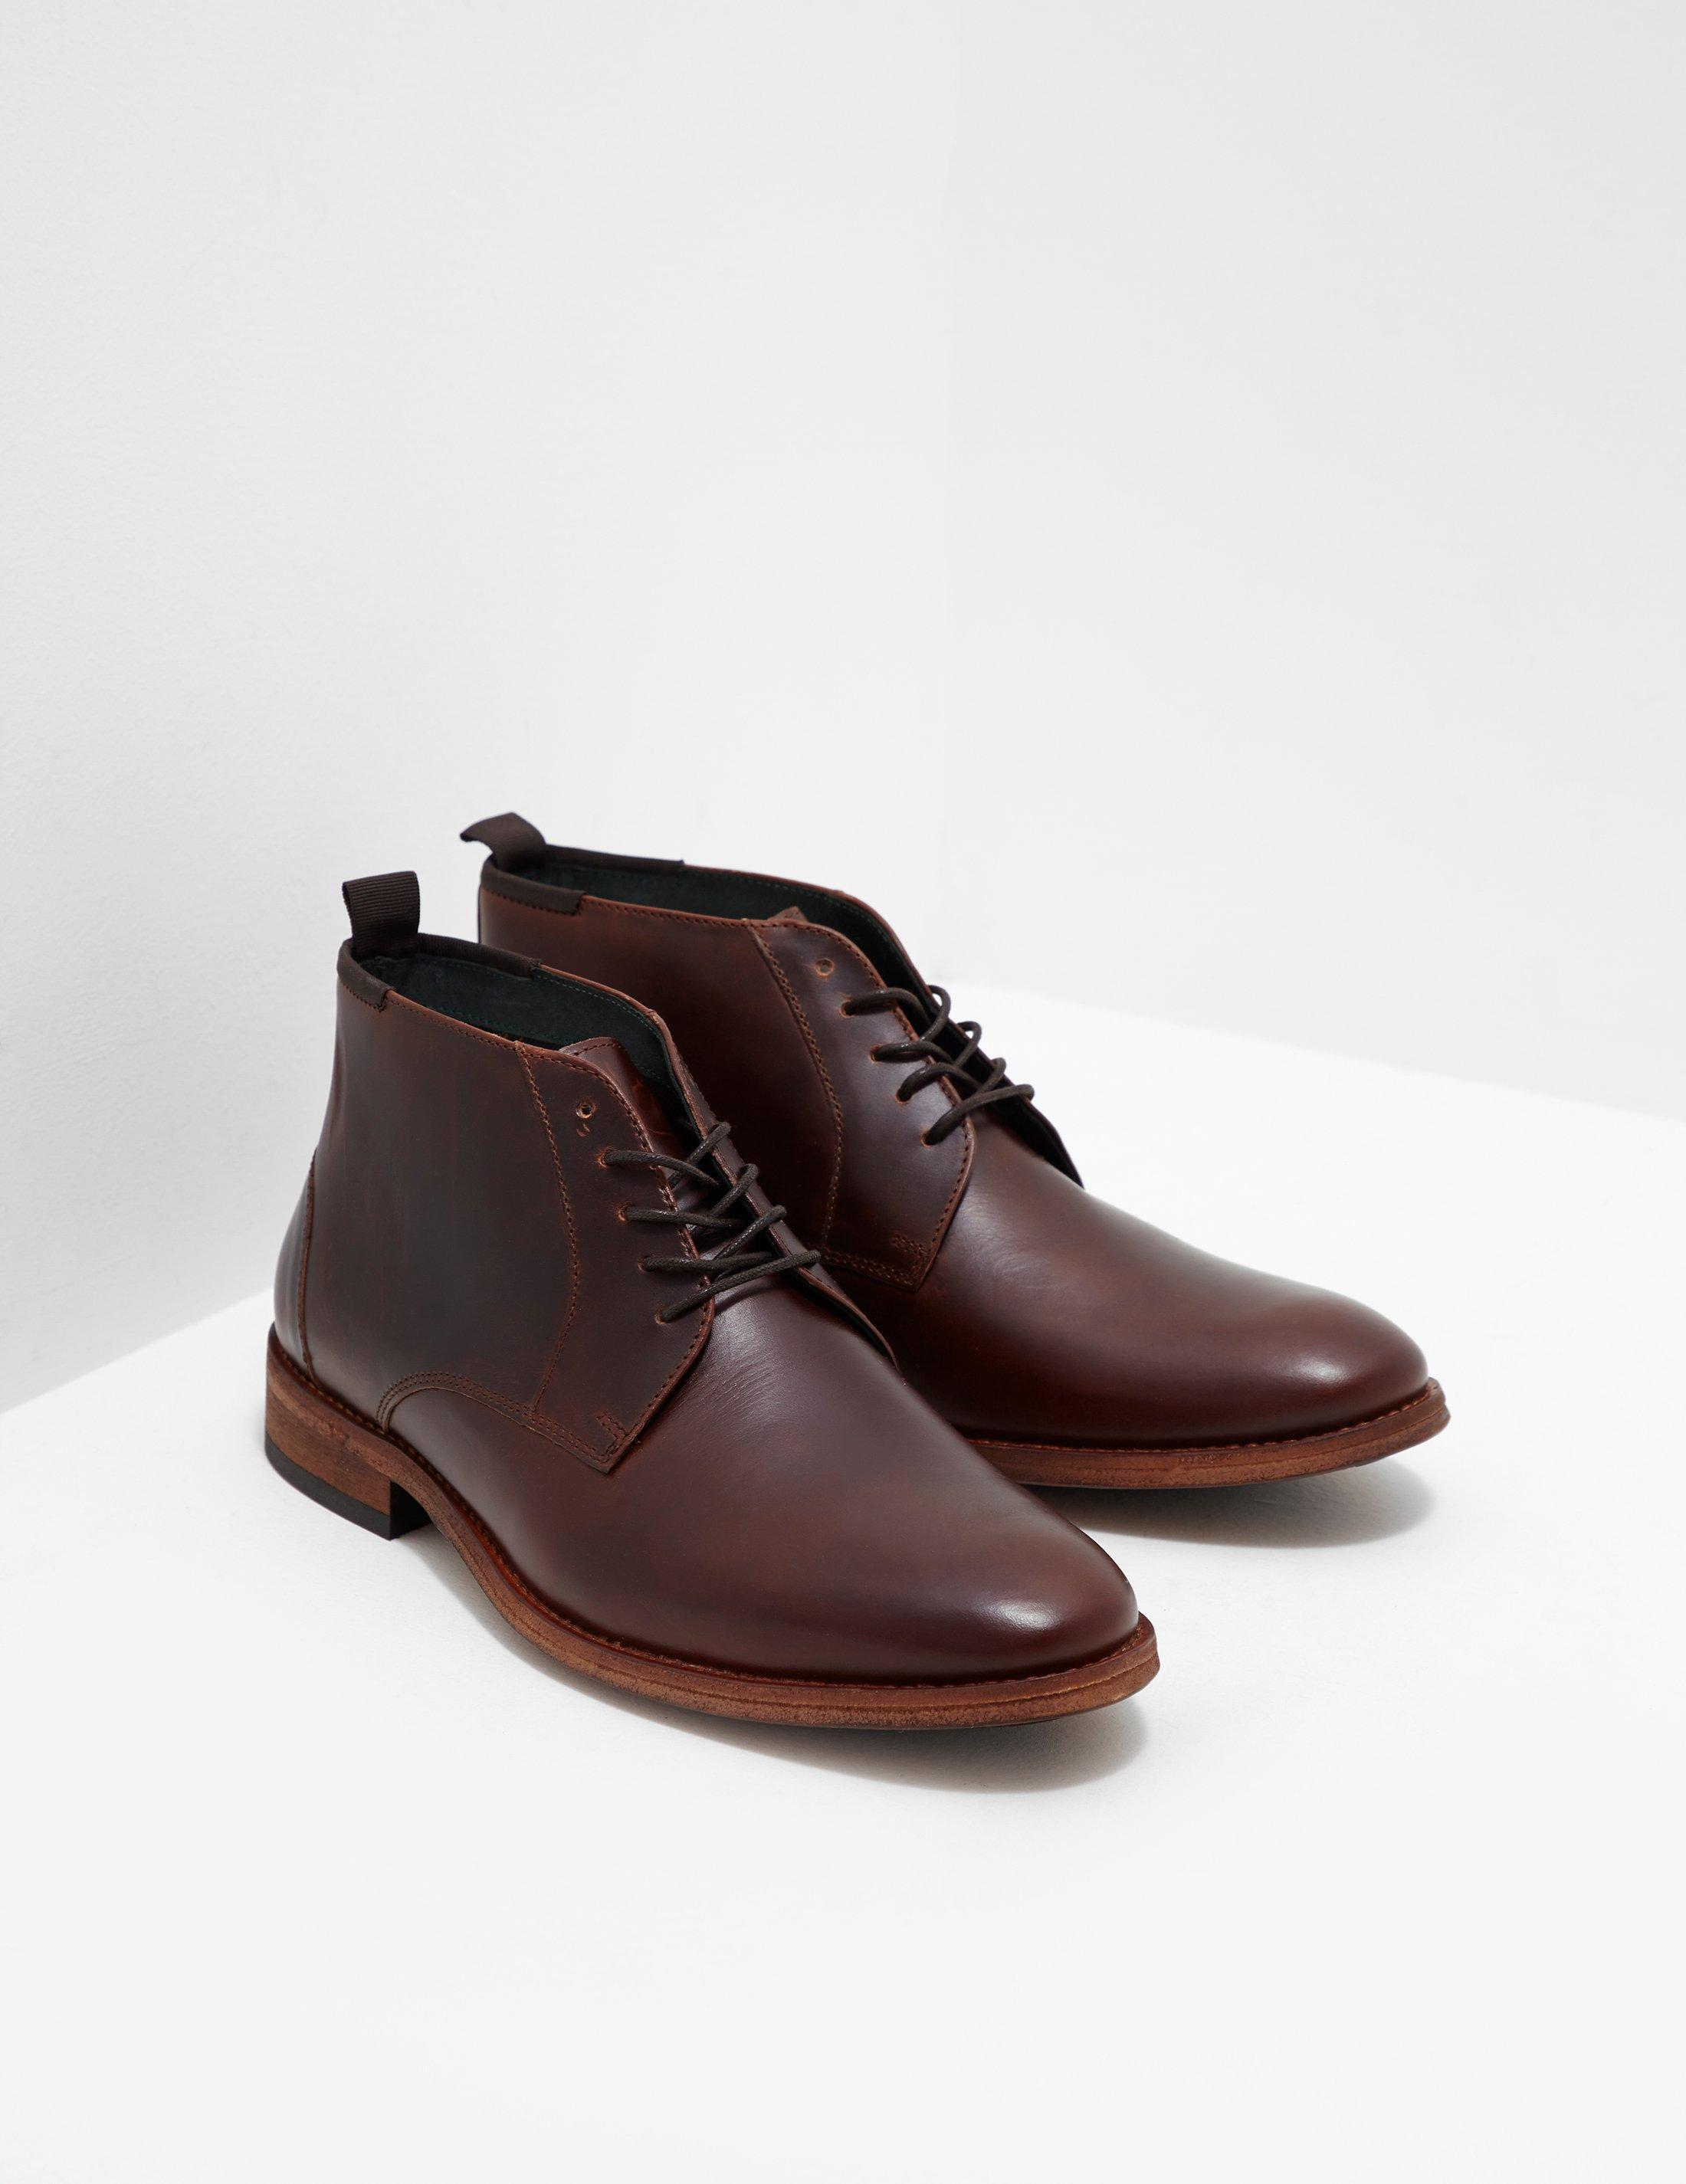 5b6d0a62f39 Barbour Benwell Boots Brown in Brown for Men - Lyst